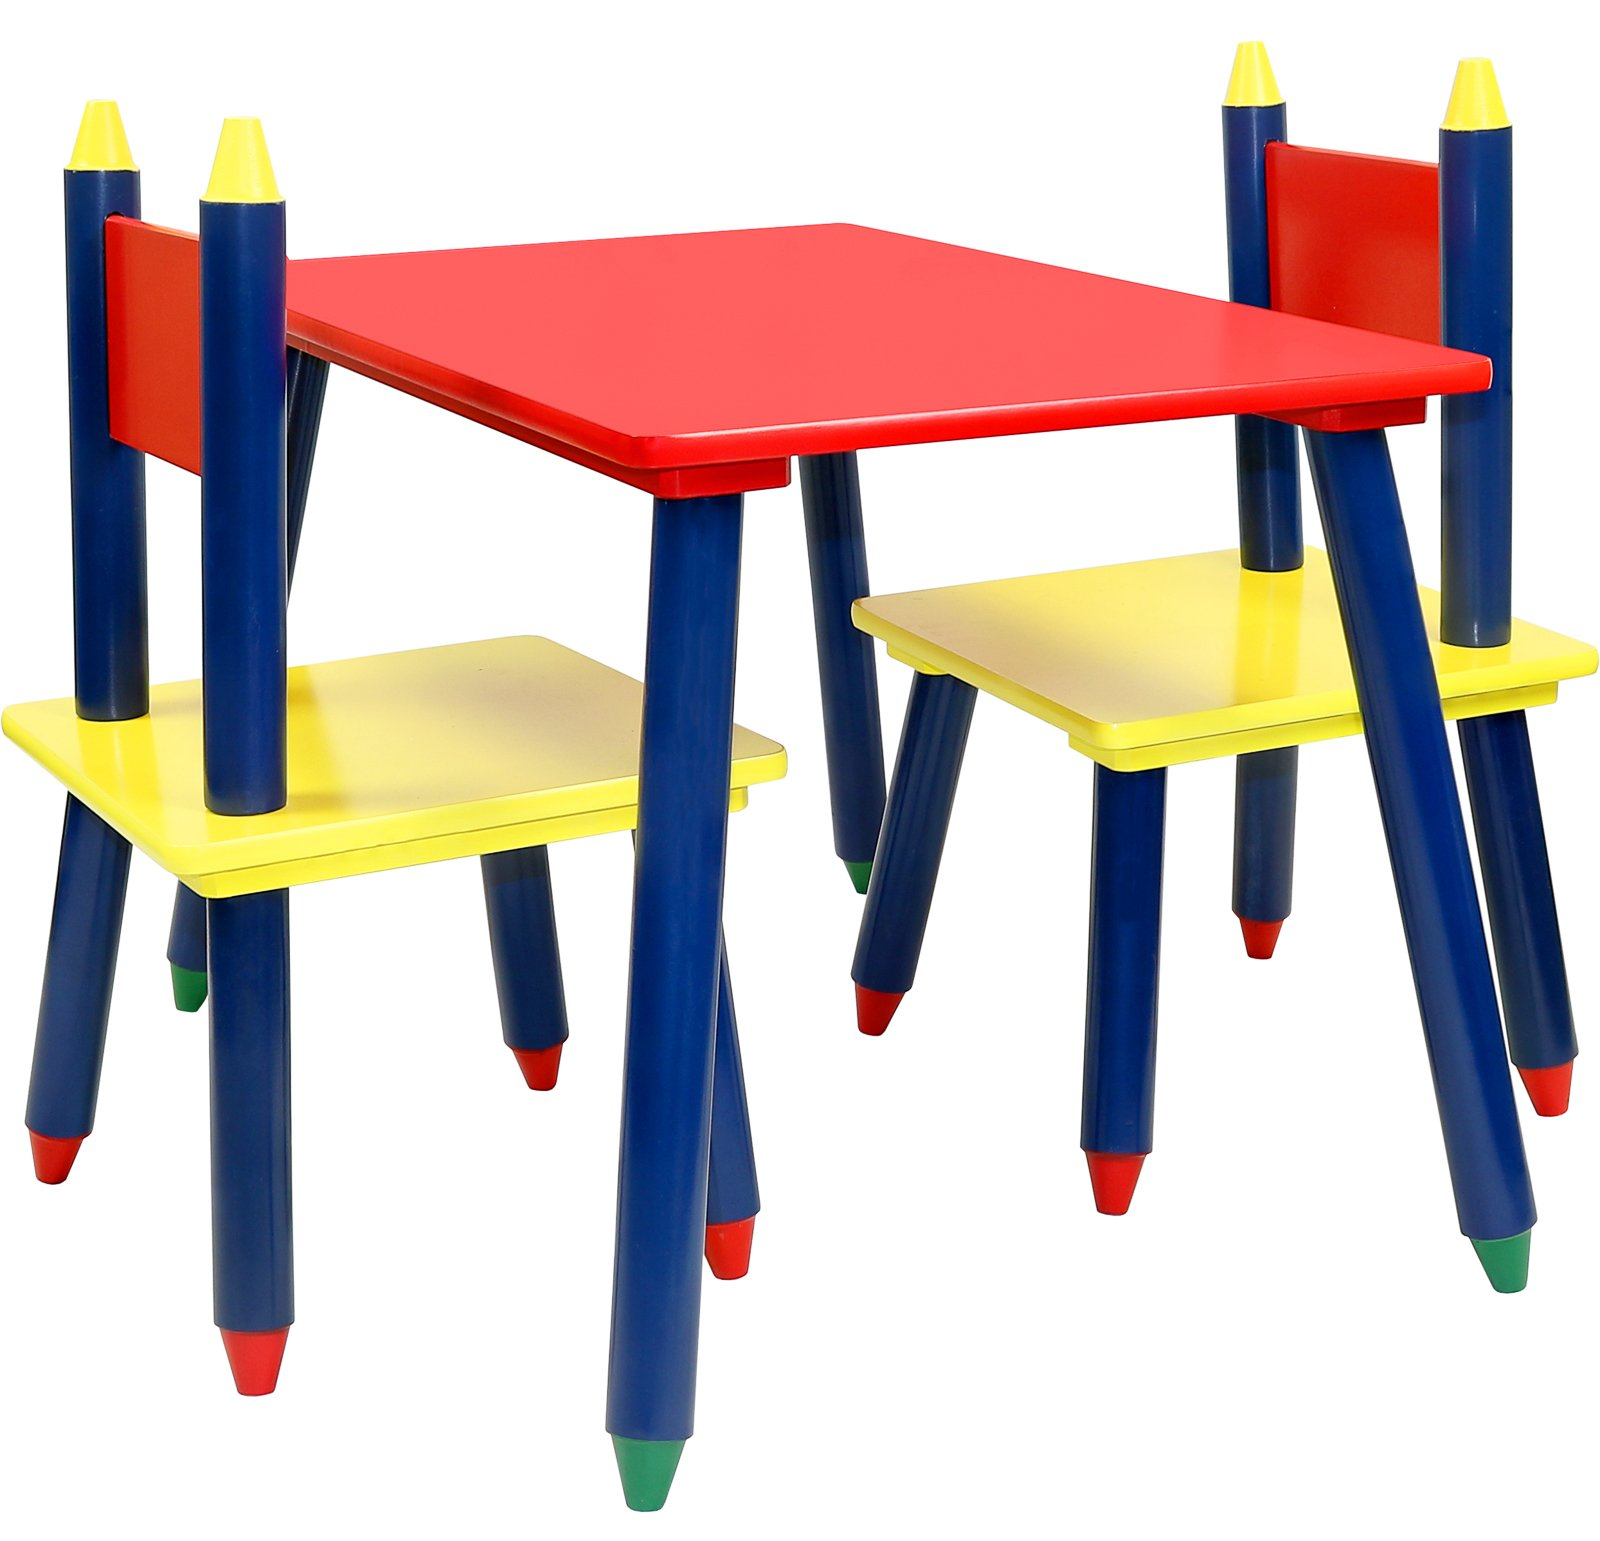 Greenco Click N' Play Kids Wooden Crayon Themed Table And Chair Set